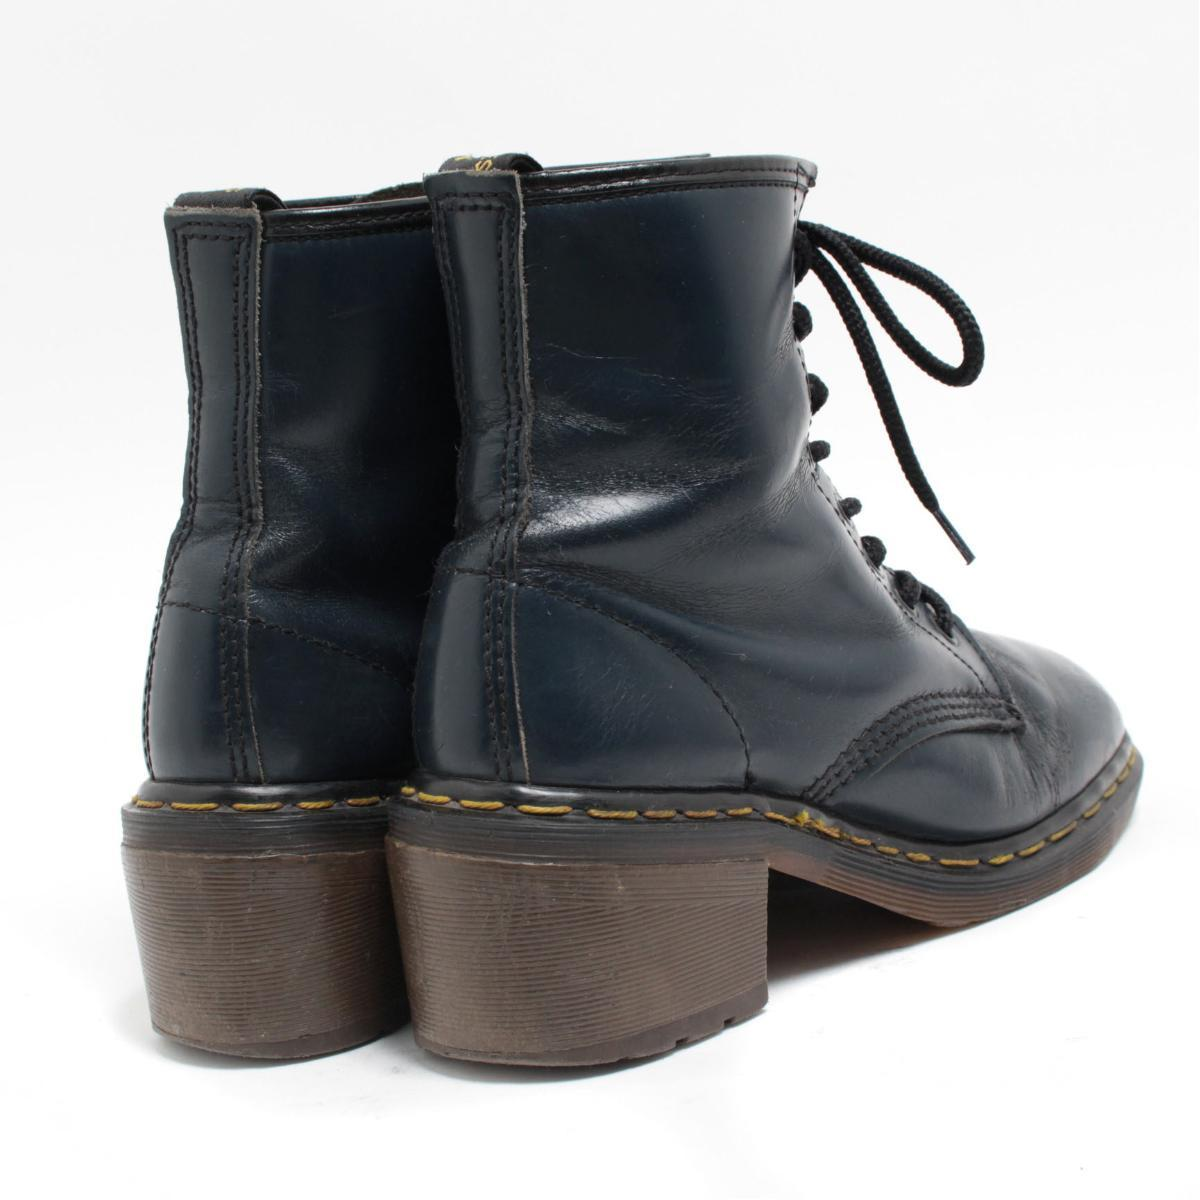 Lady's 23.5cm /bol4645 made in the doctor Martin Dr.Martens high-heeled shoes 8 hall boots U.K.